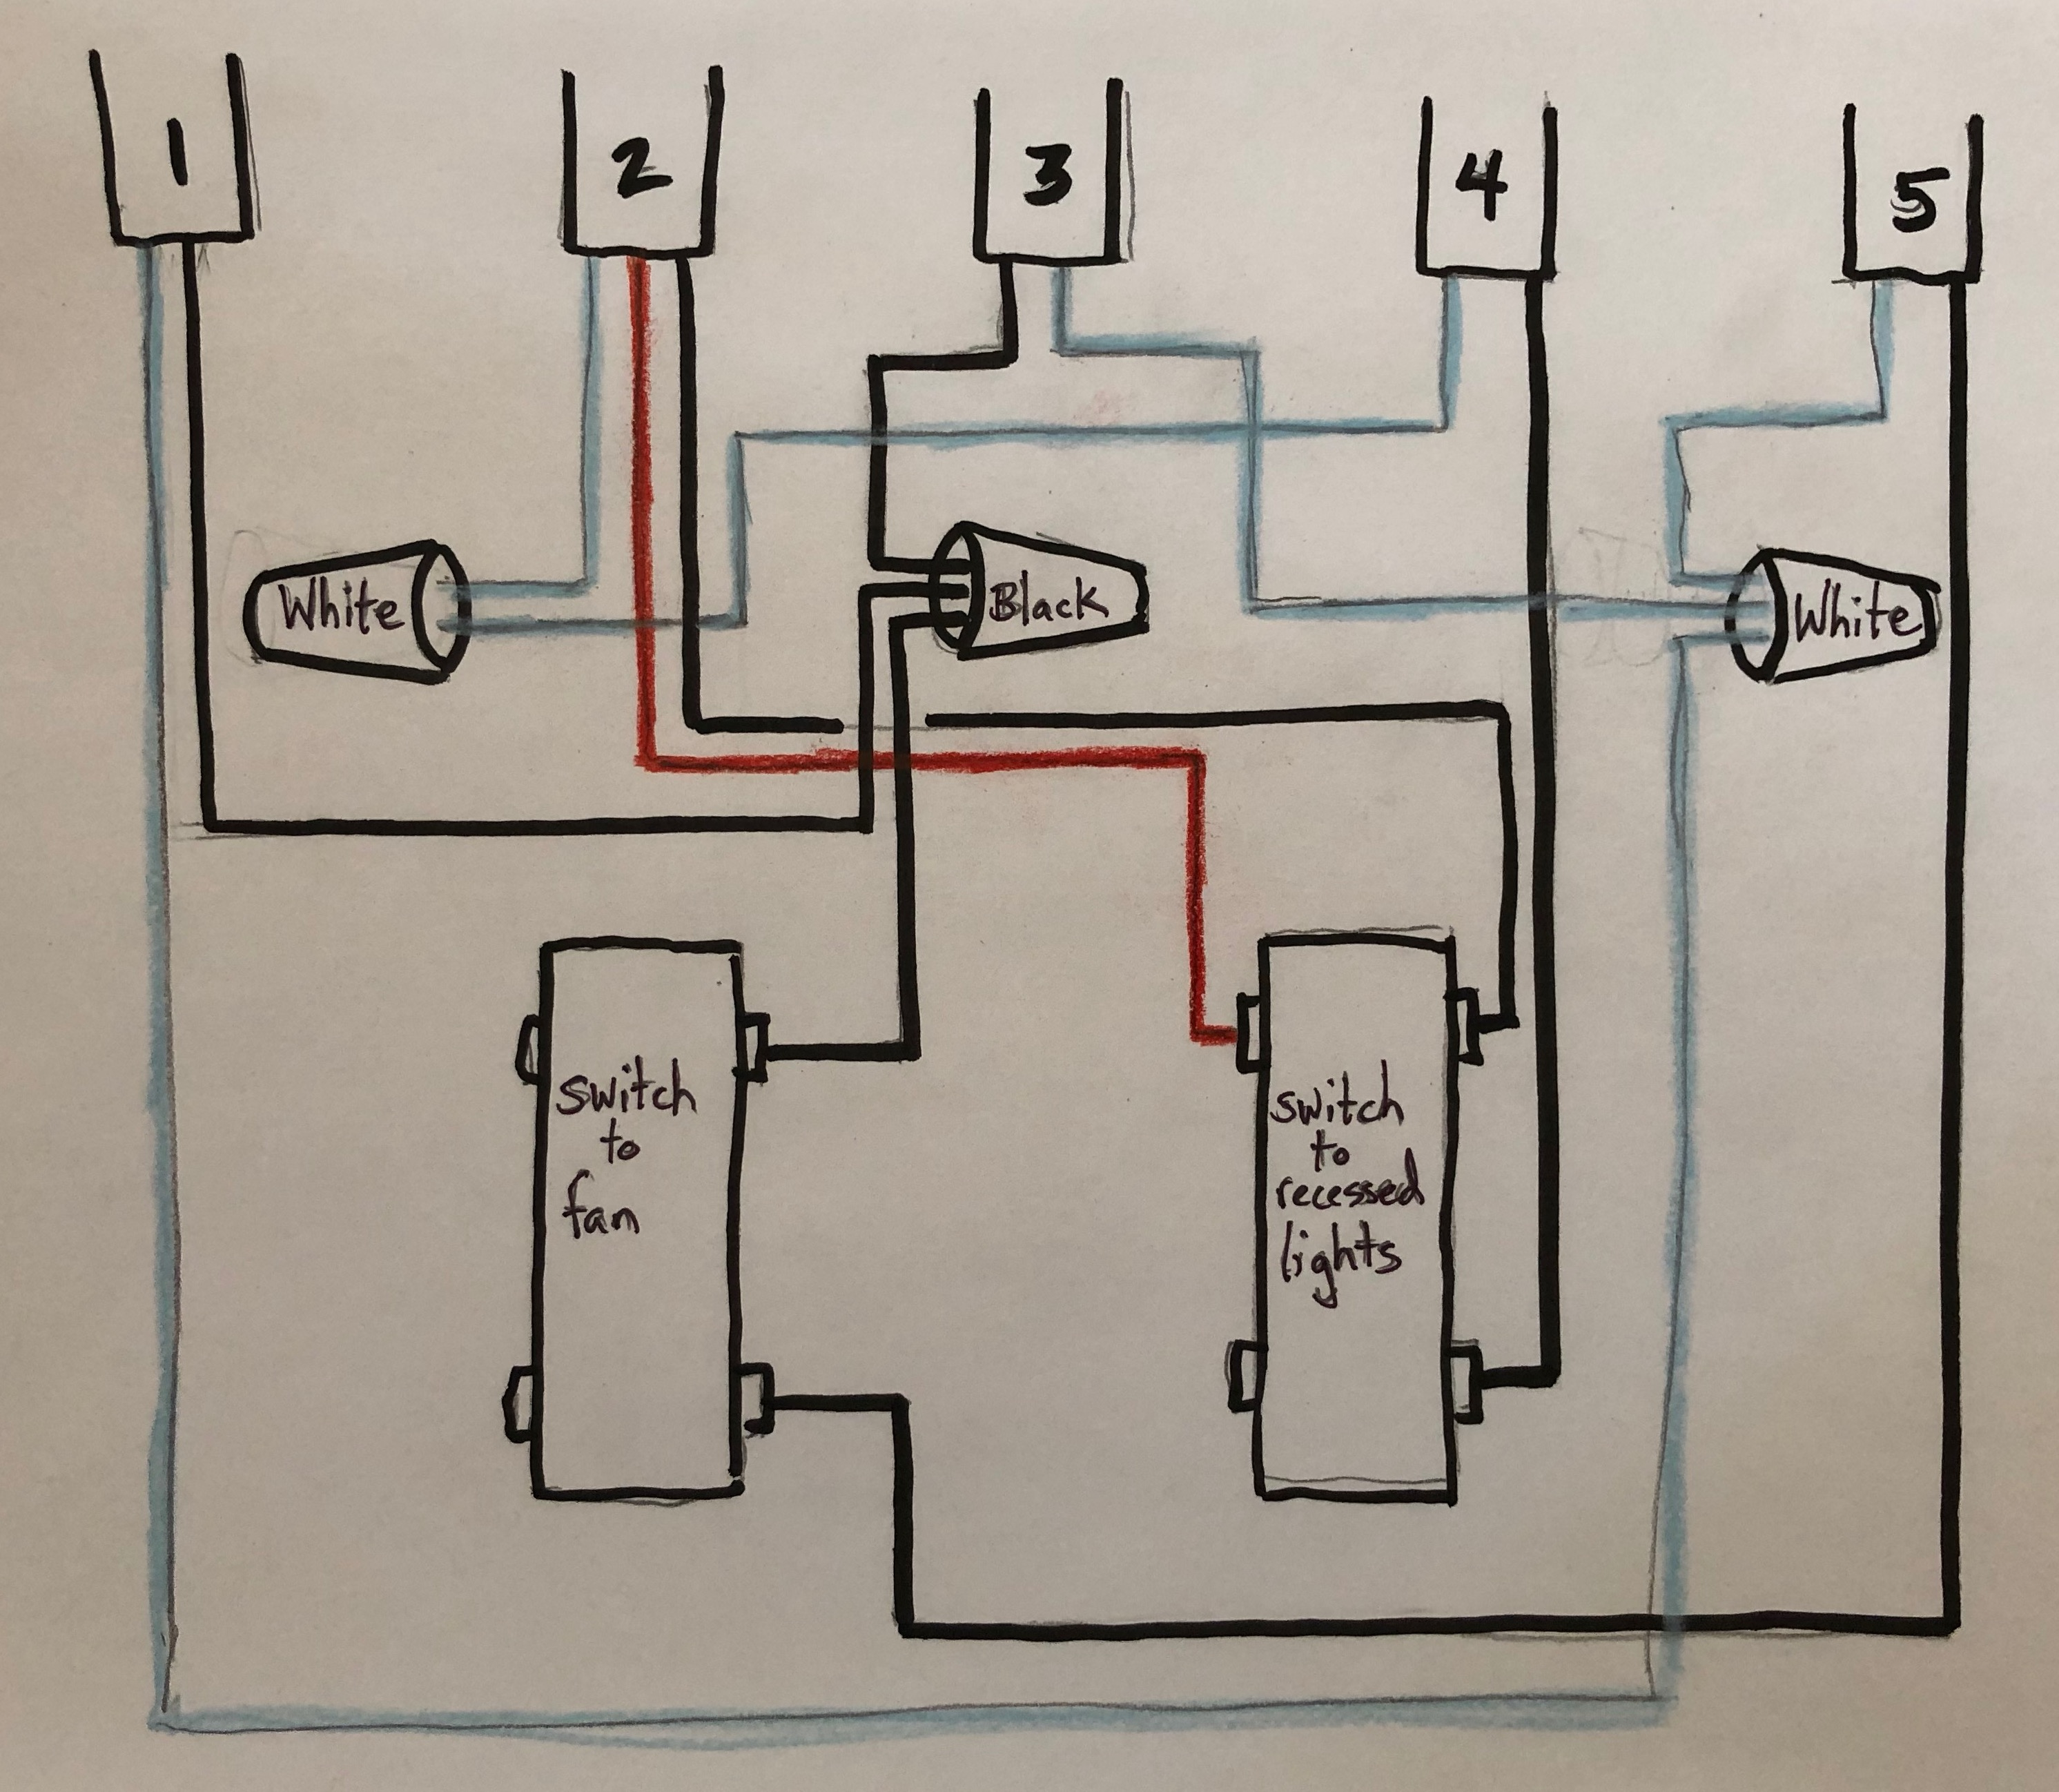 replacing bath fan switch with timer